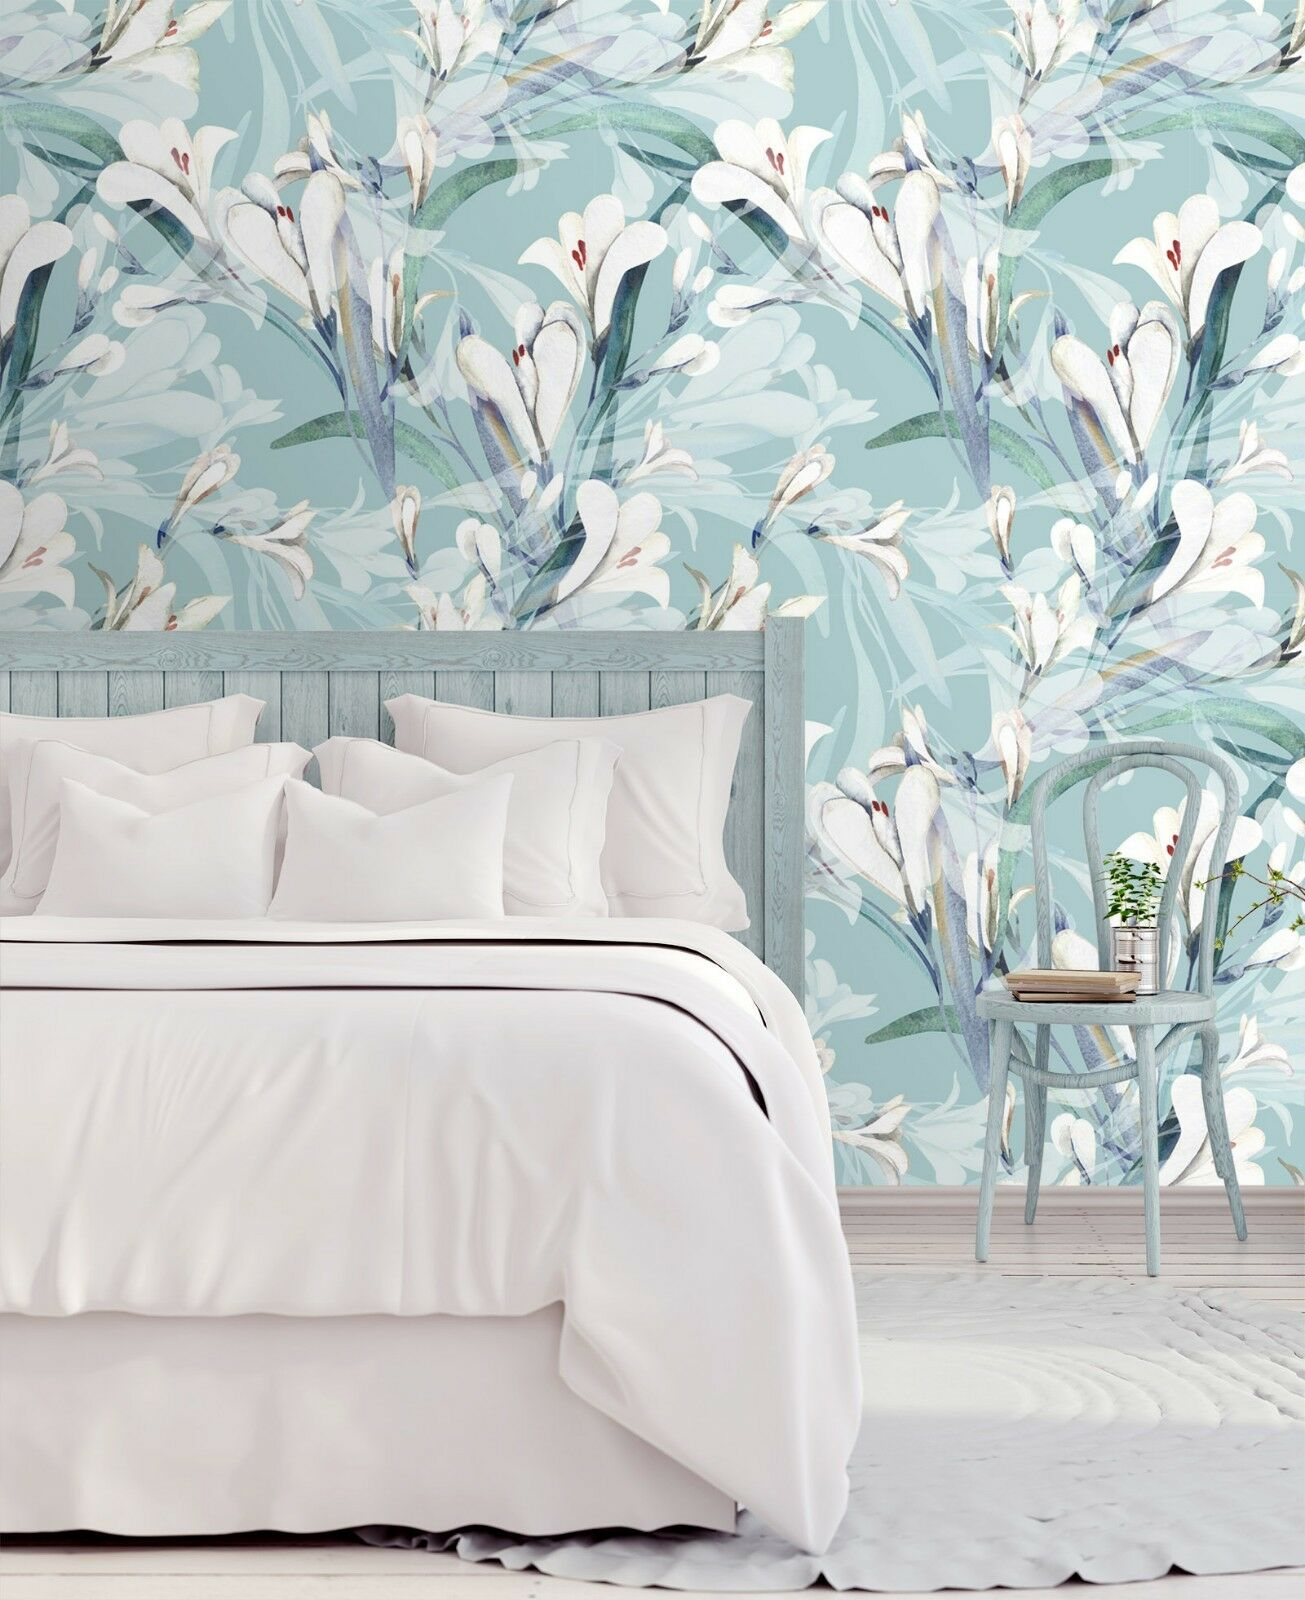 3D Grün Flower 78 Wall Paper Print Wall Decal Deco Indoor Wall Murals US Summer